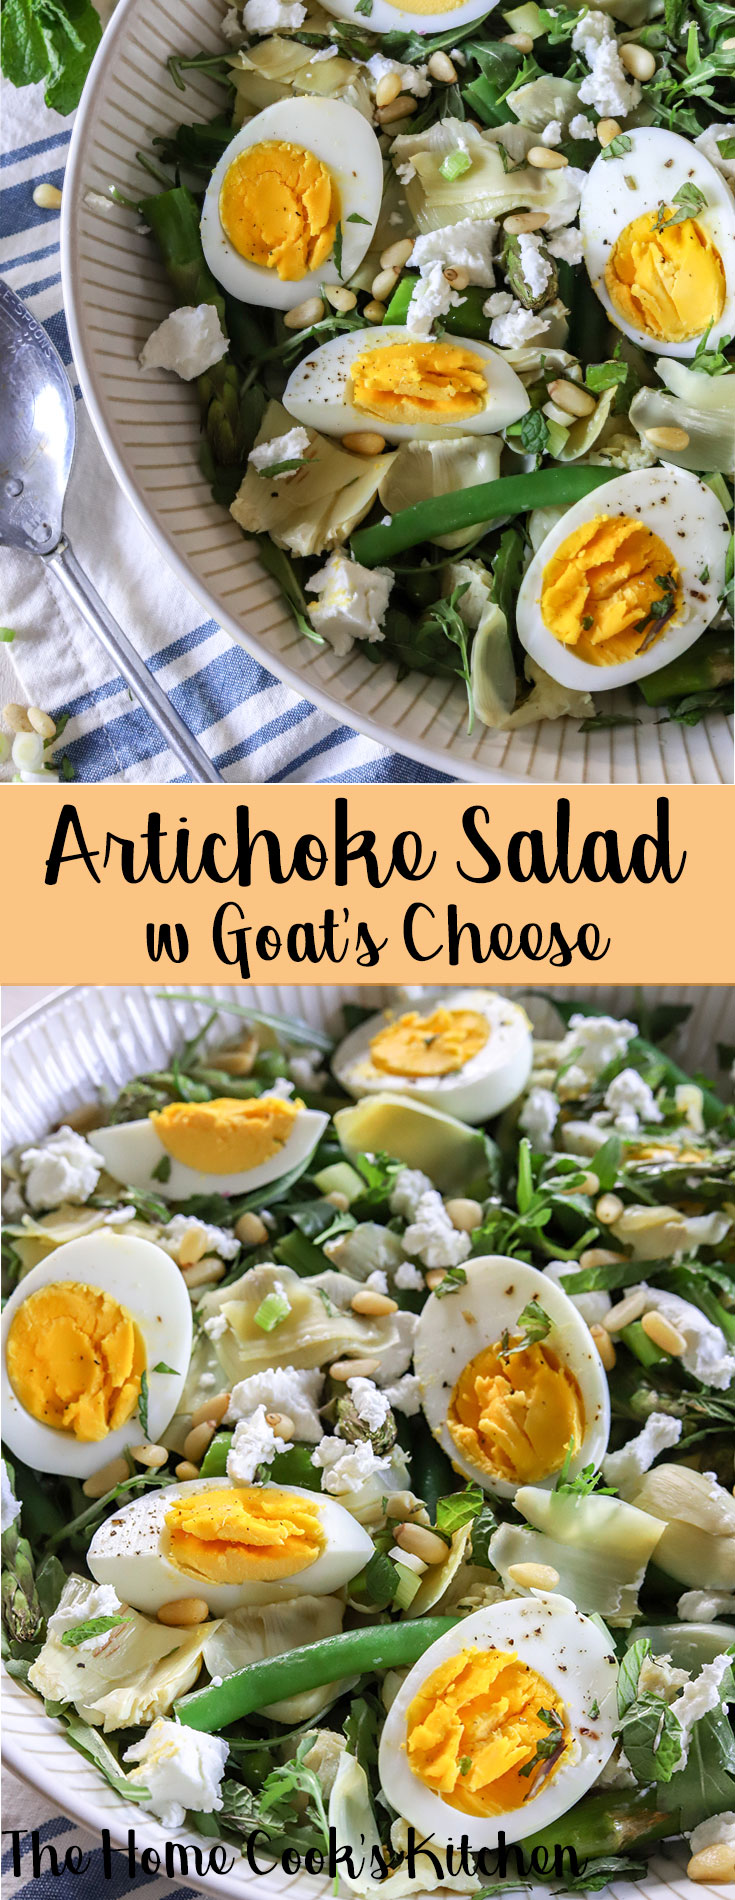 A light, fresh healthy salad, this artichoke salad with goat cheese is a quick and easy recipe, great for spring entertaining, weeknight meals or family get-togethers. Combining the fresh flavors of #spring, this salad is quick, easy and delicious #springrecipe #springsalad #salad